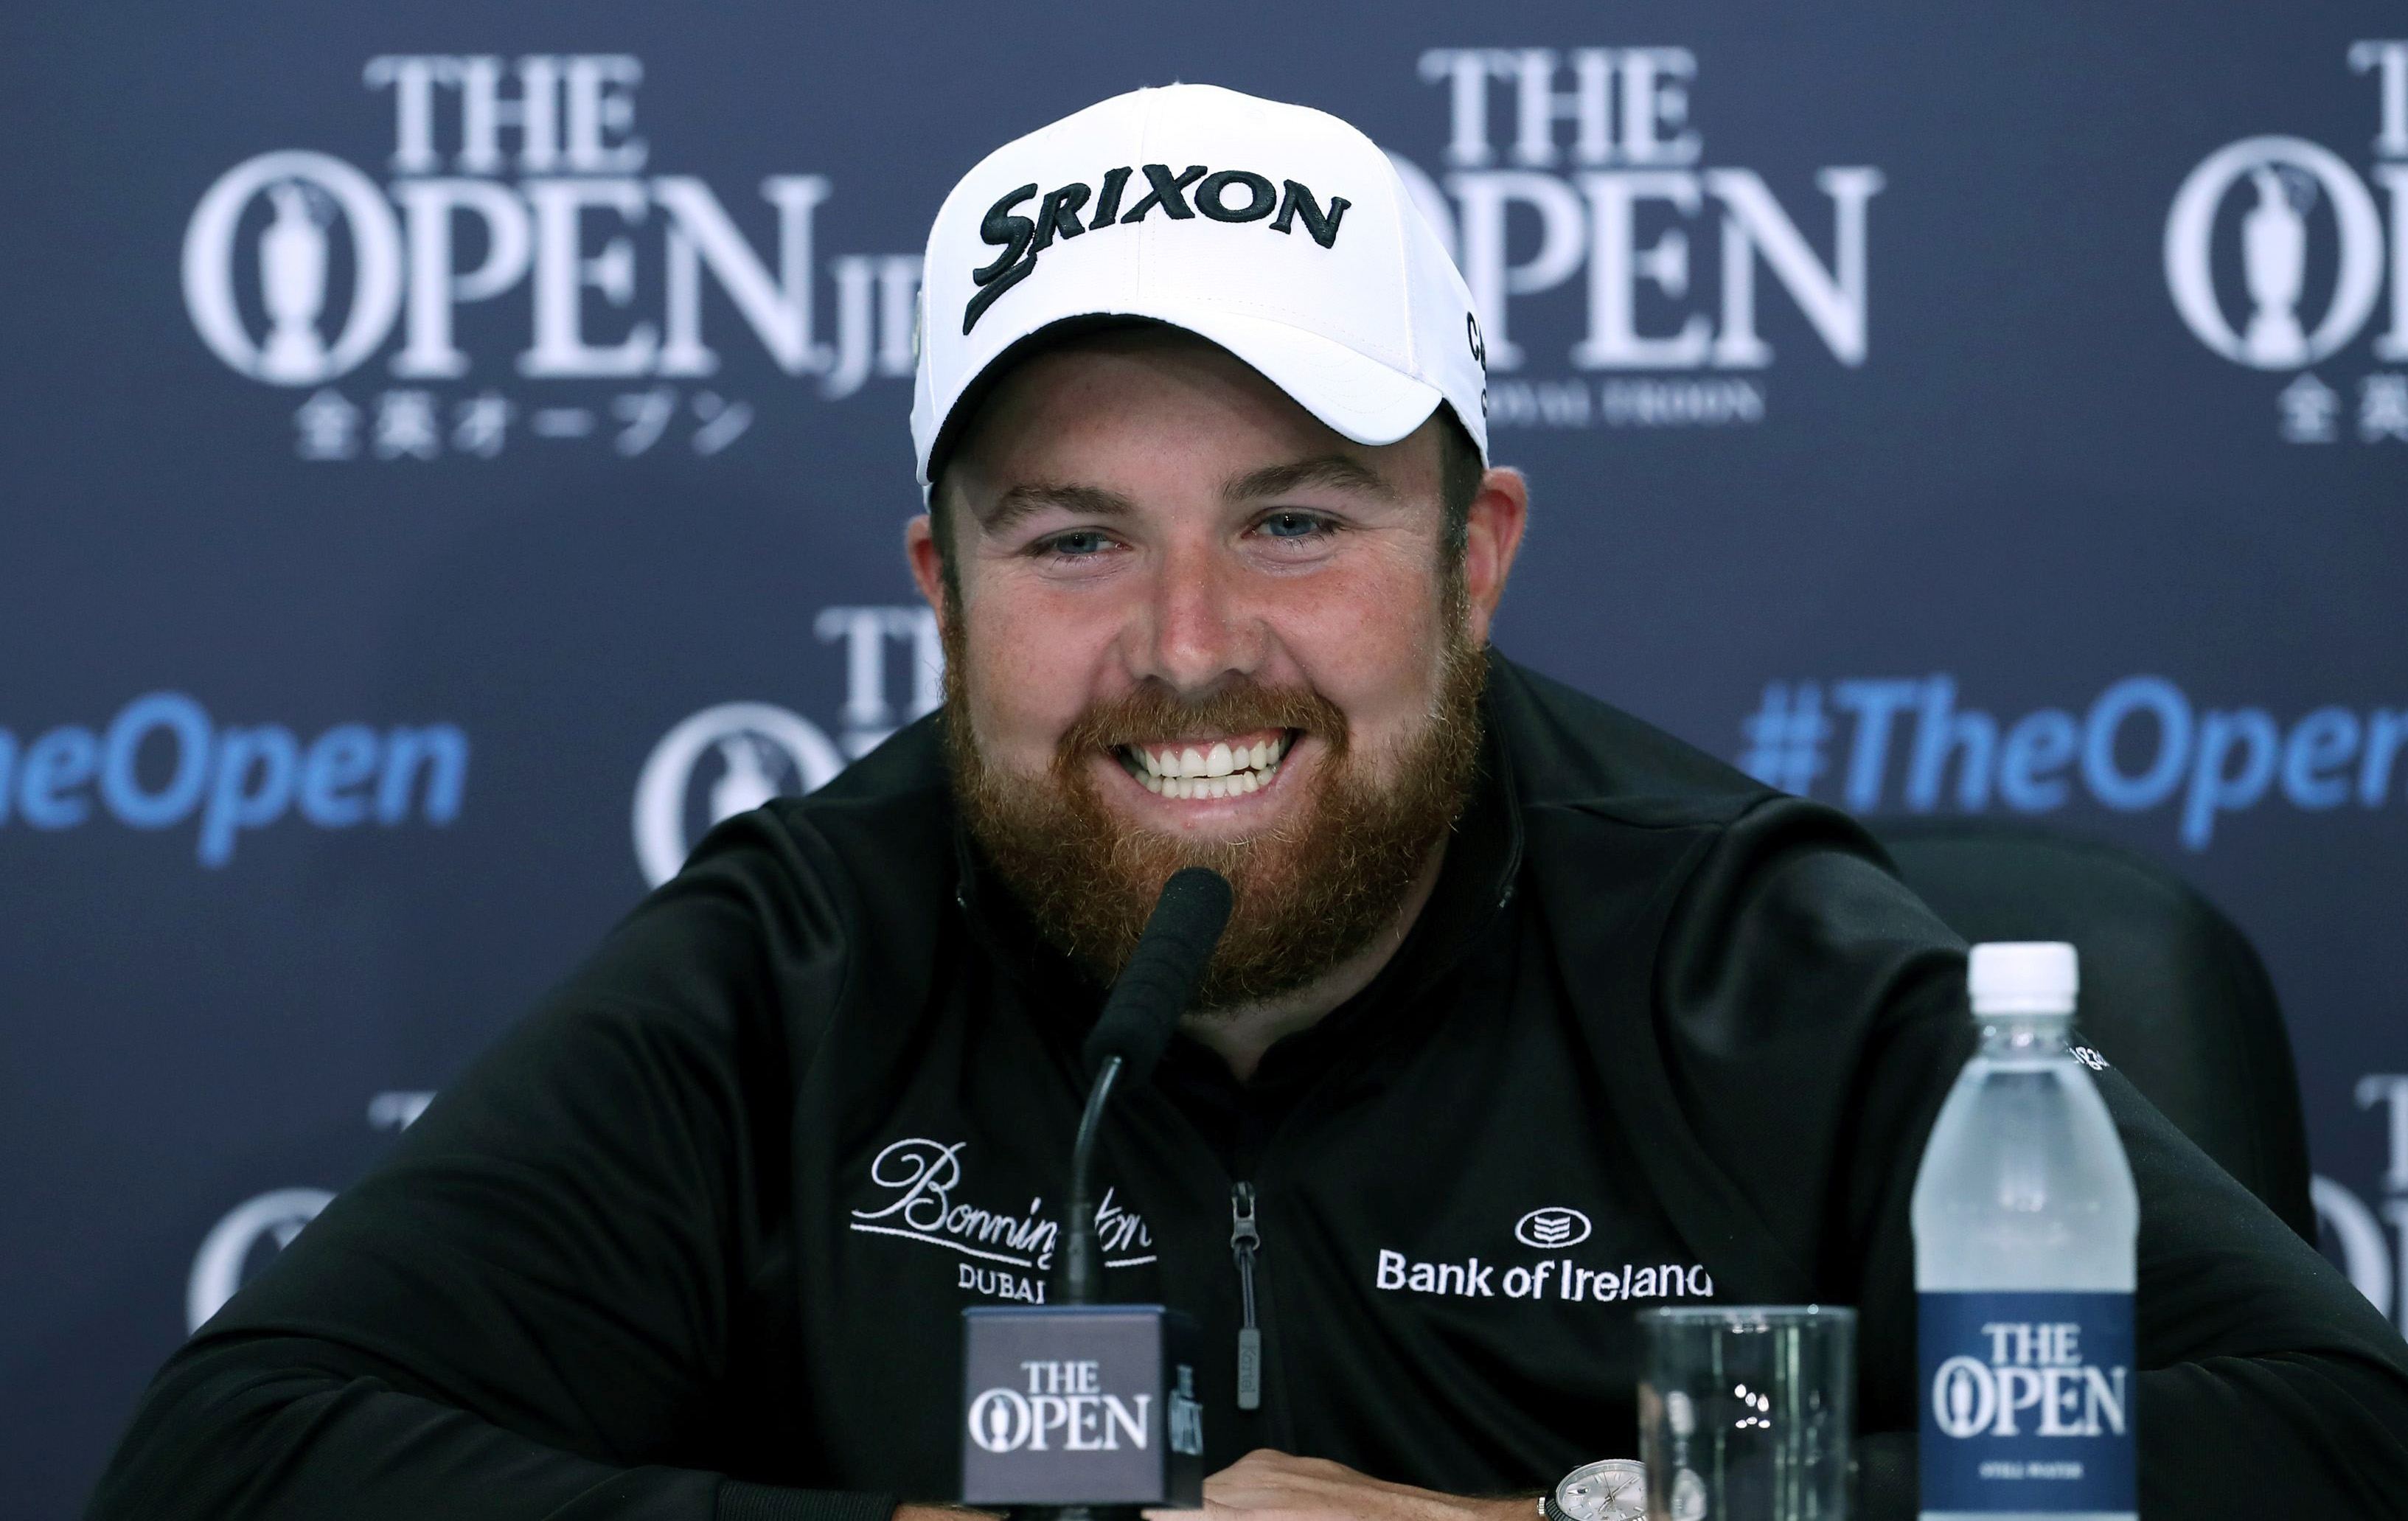 Ireland's Shane Lowry smiles during a press conference listens to a question during a press conference ahead of the British Open Golf Championships at the Royal Troon Golf Club in Troon, Scotland, Wednesday, July 13, 2016. (Peter Byrne/PA via AP)